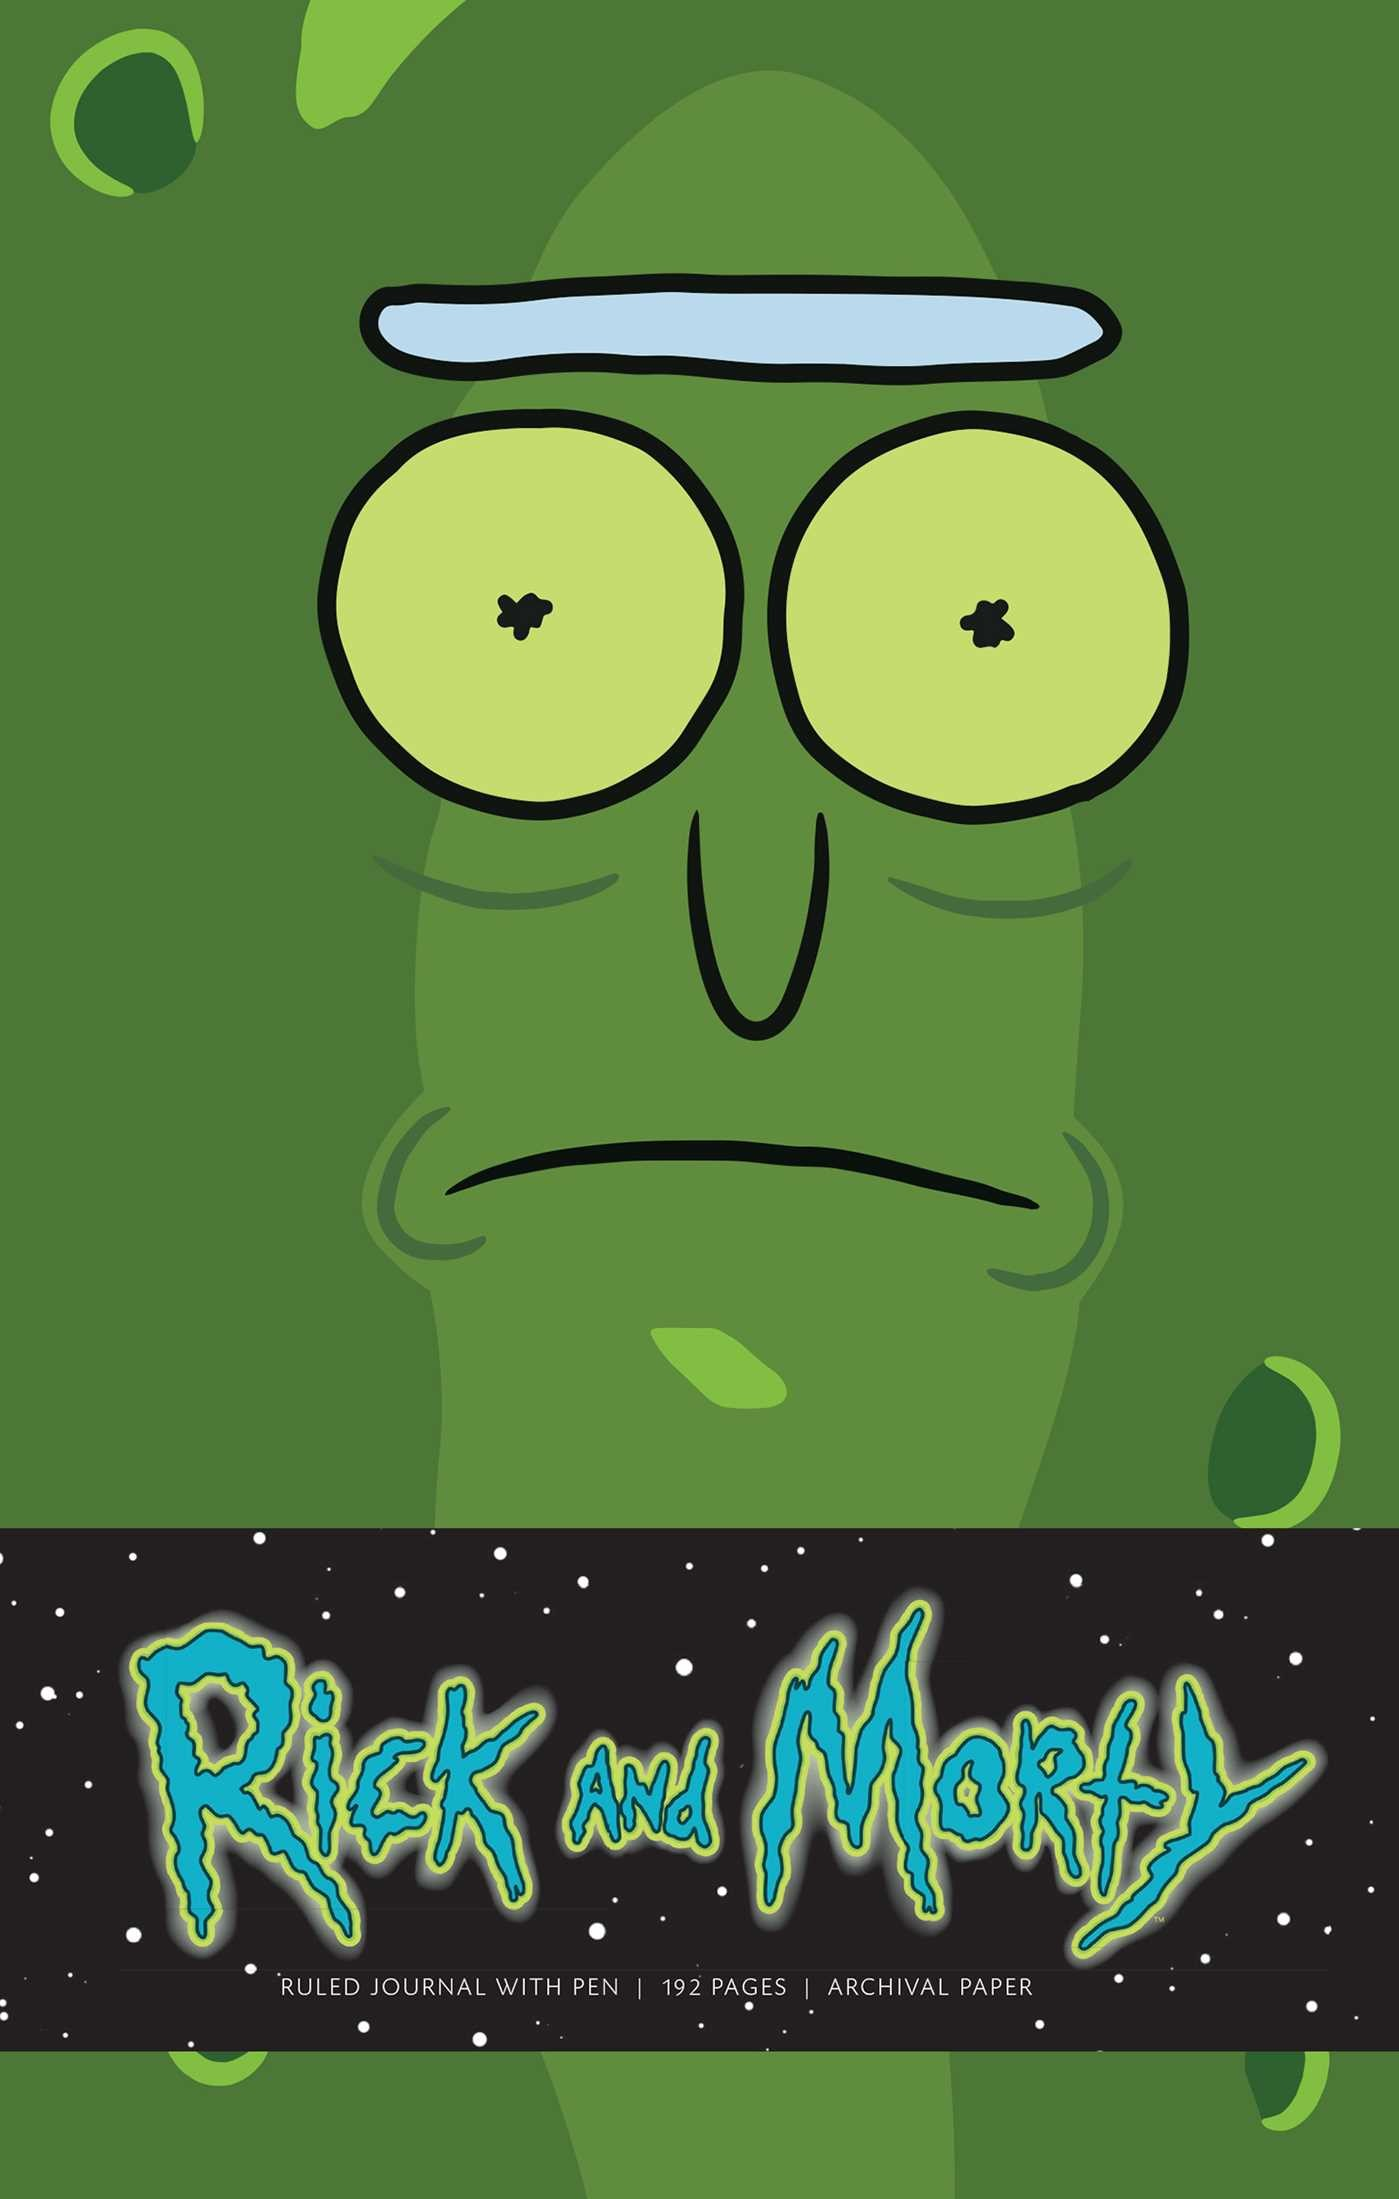 Rick and morty pickle rick hardcover ruled journal with pen 9781683835356.in01